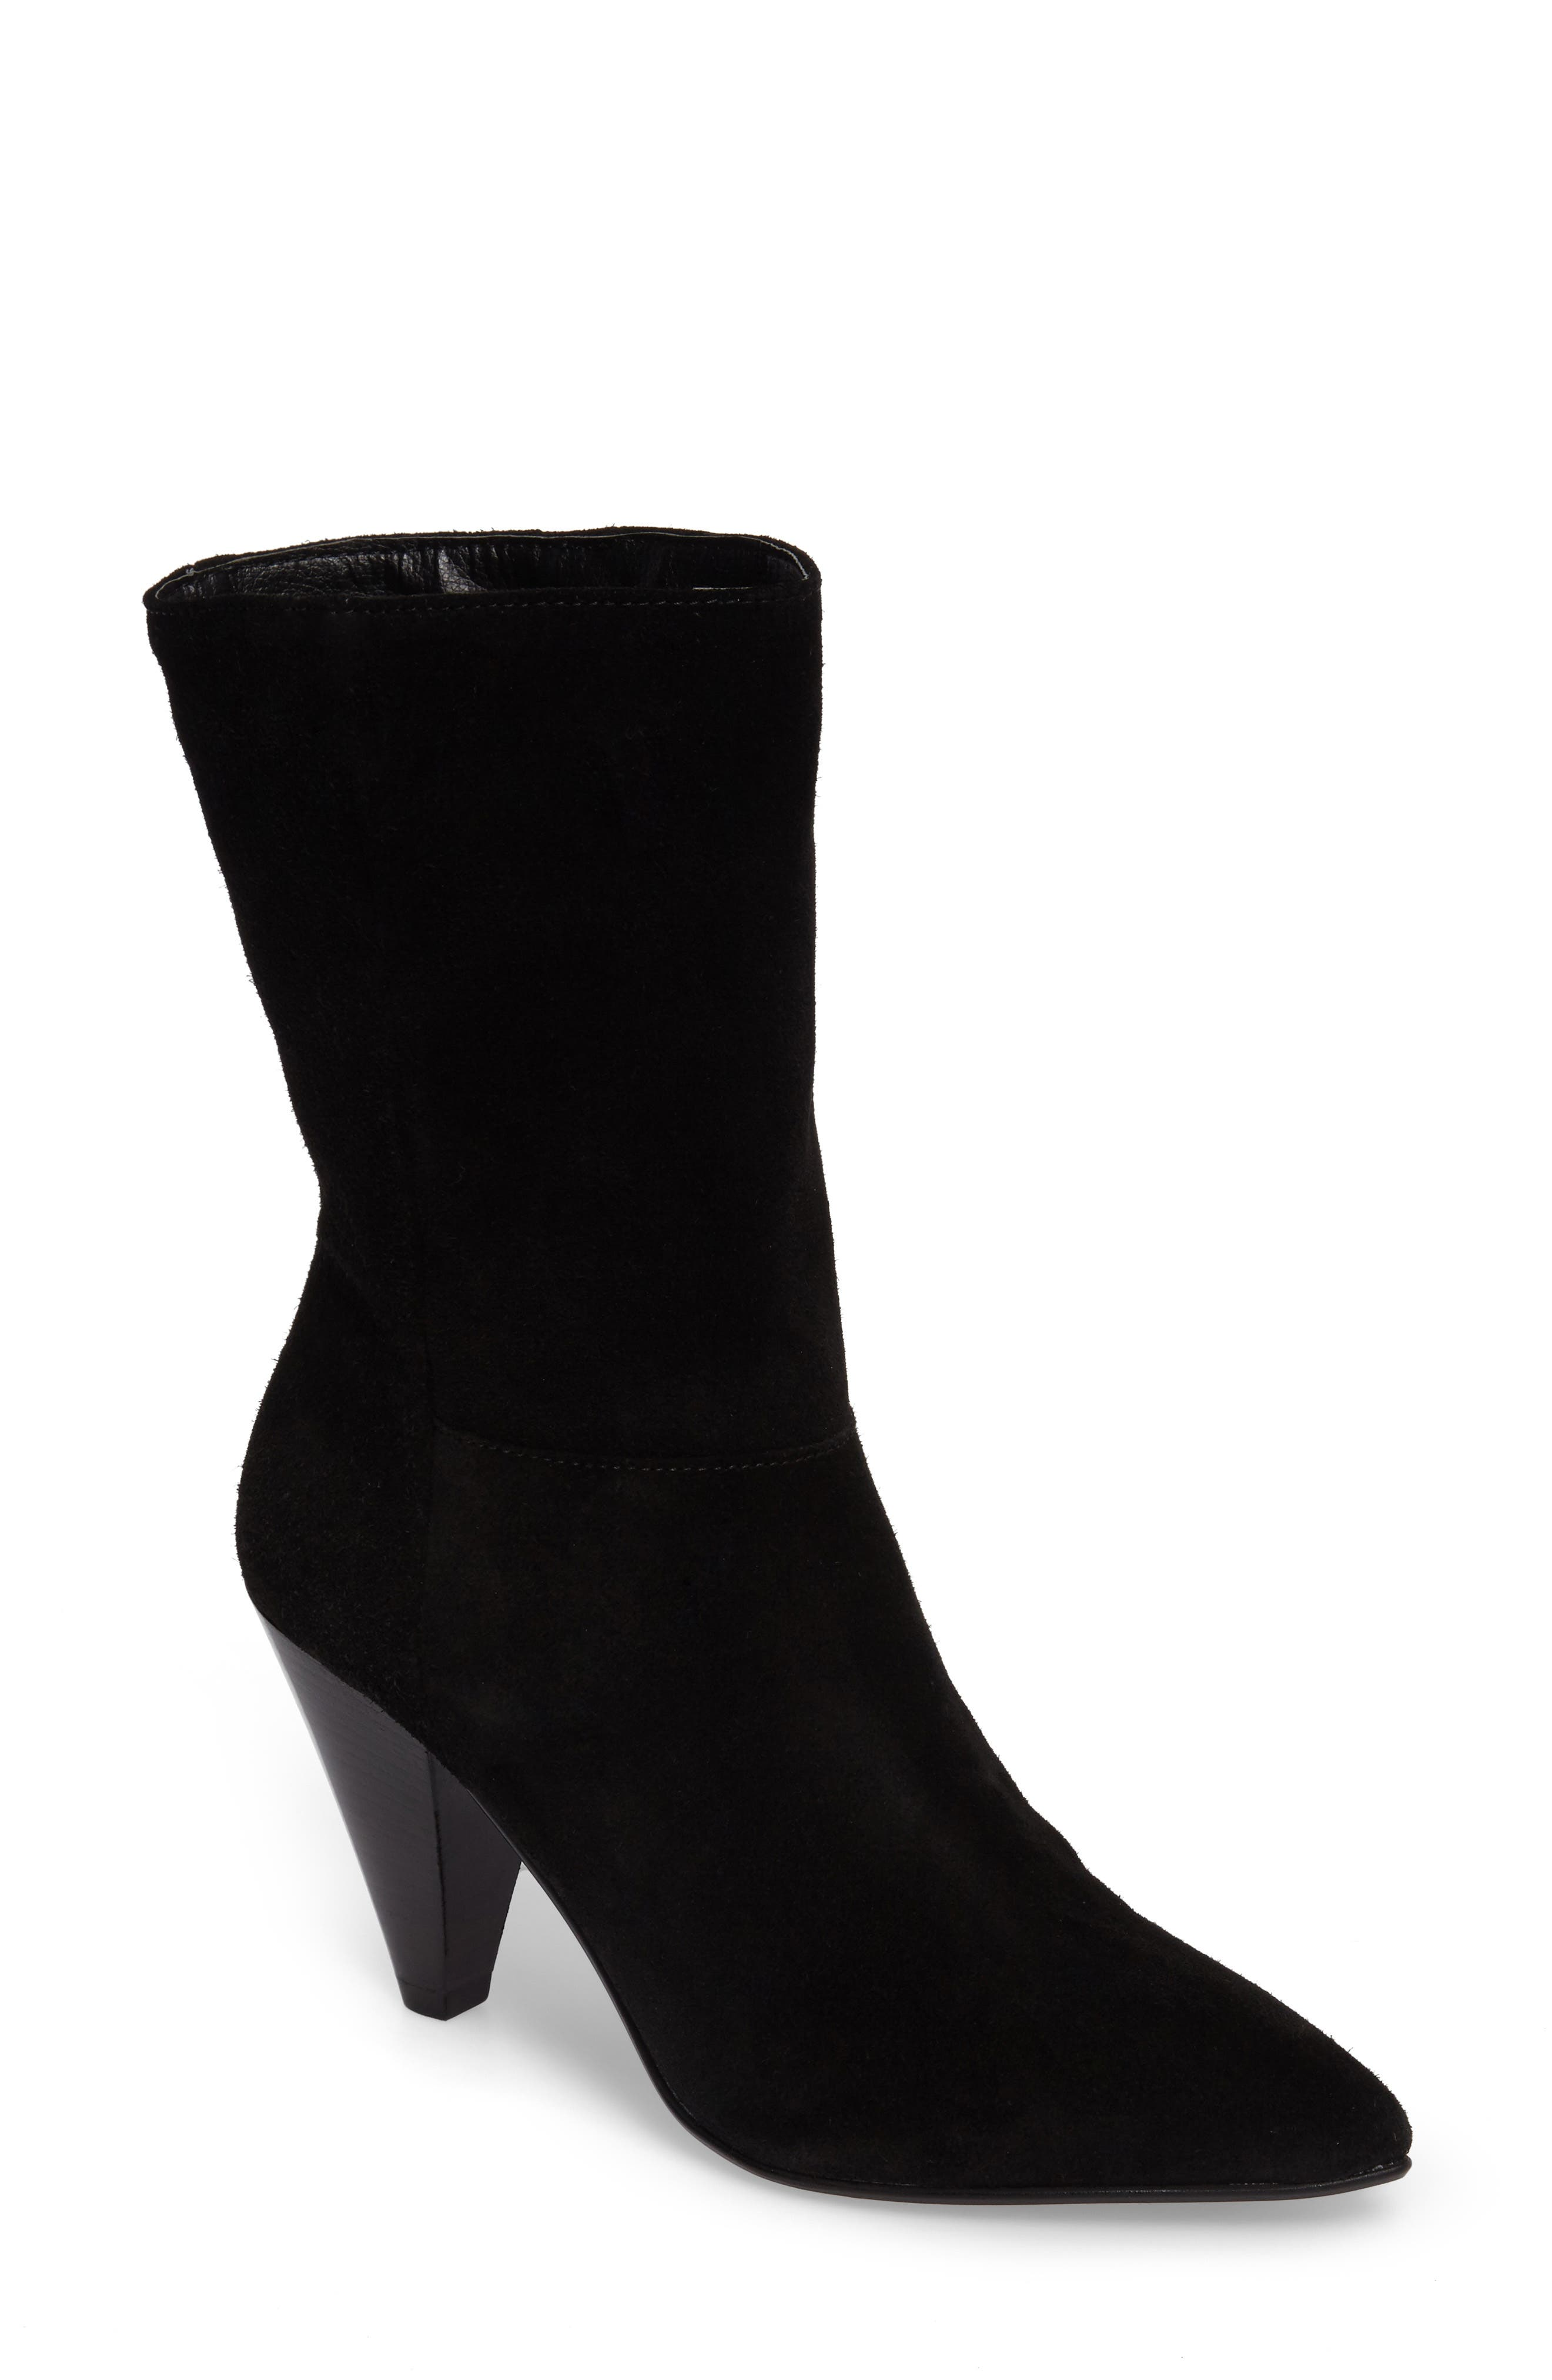 Main Image - Topshop Hollie Pointy Toe Bootie (Women)